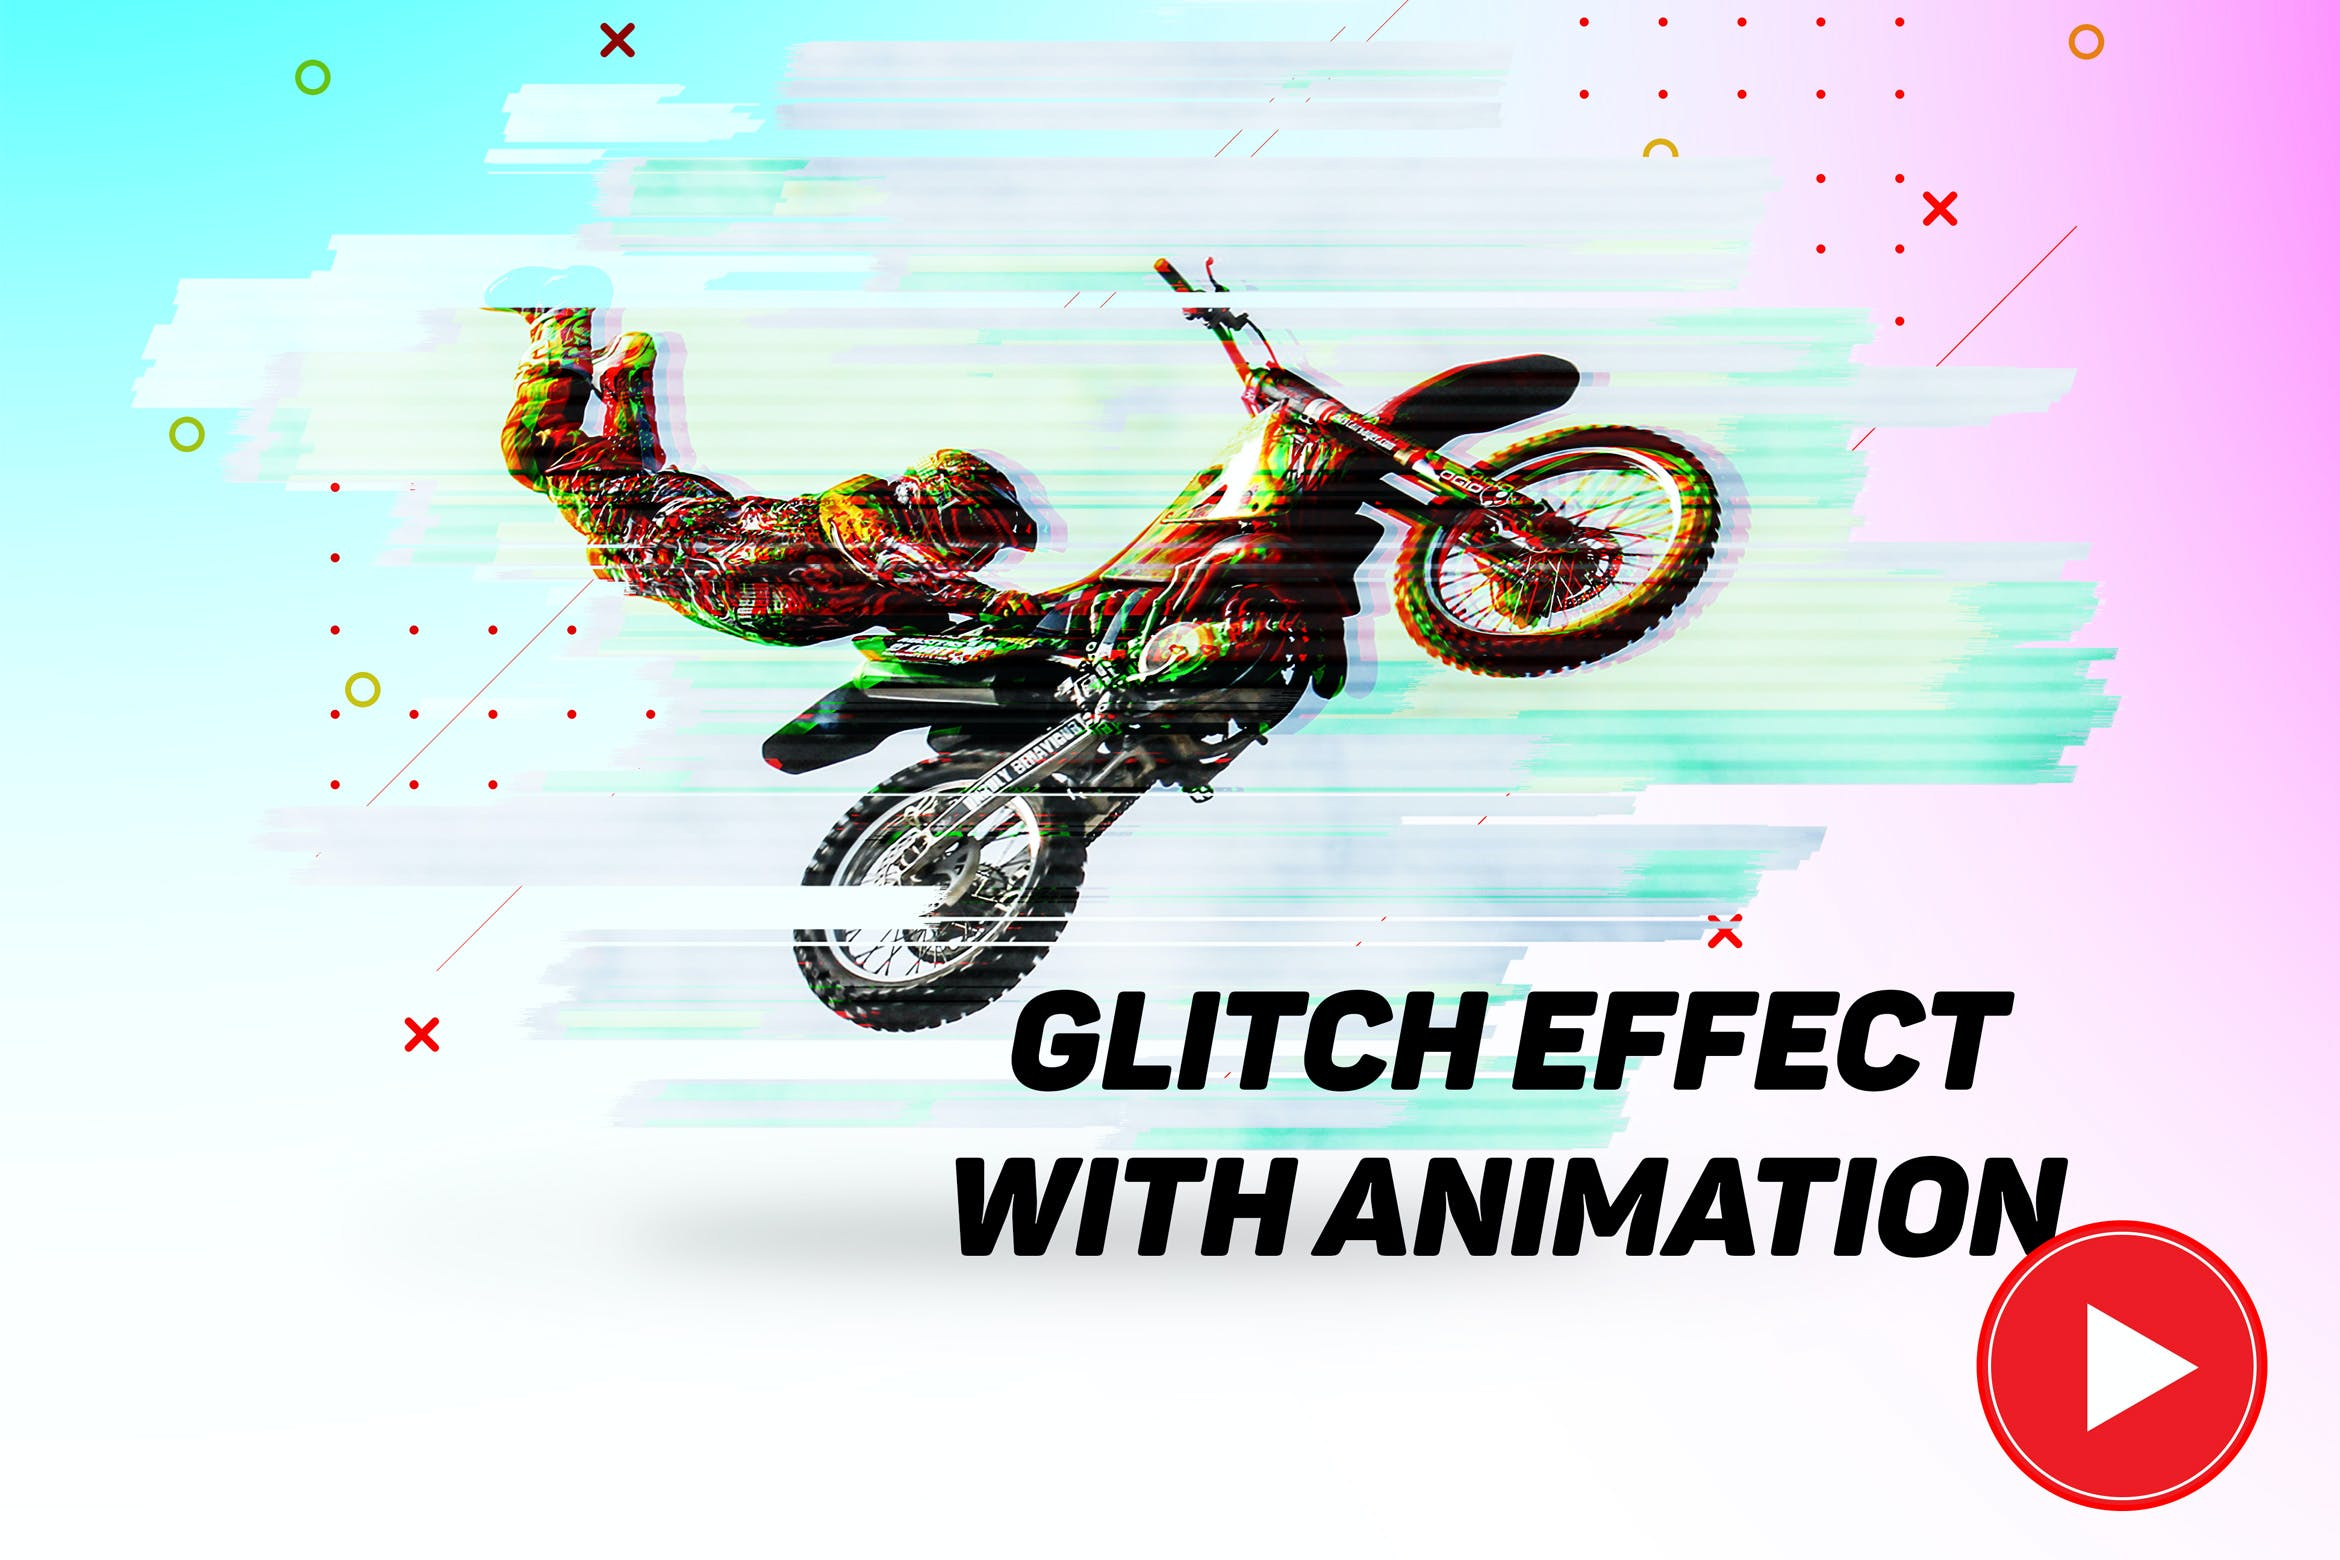 Glitch effect with GIF animation by Kahuna_Design on Envato